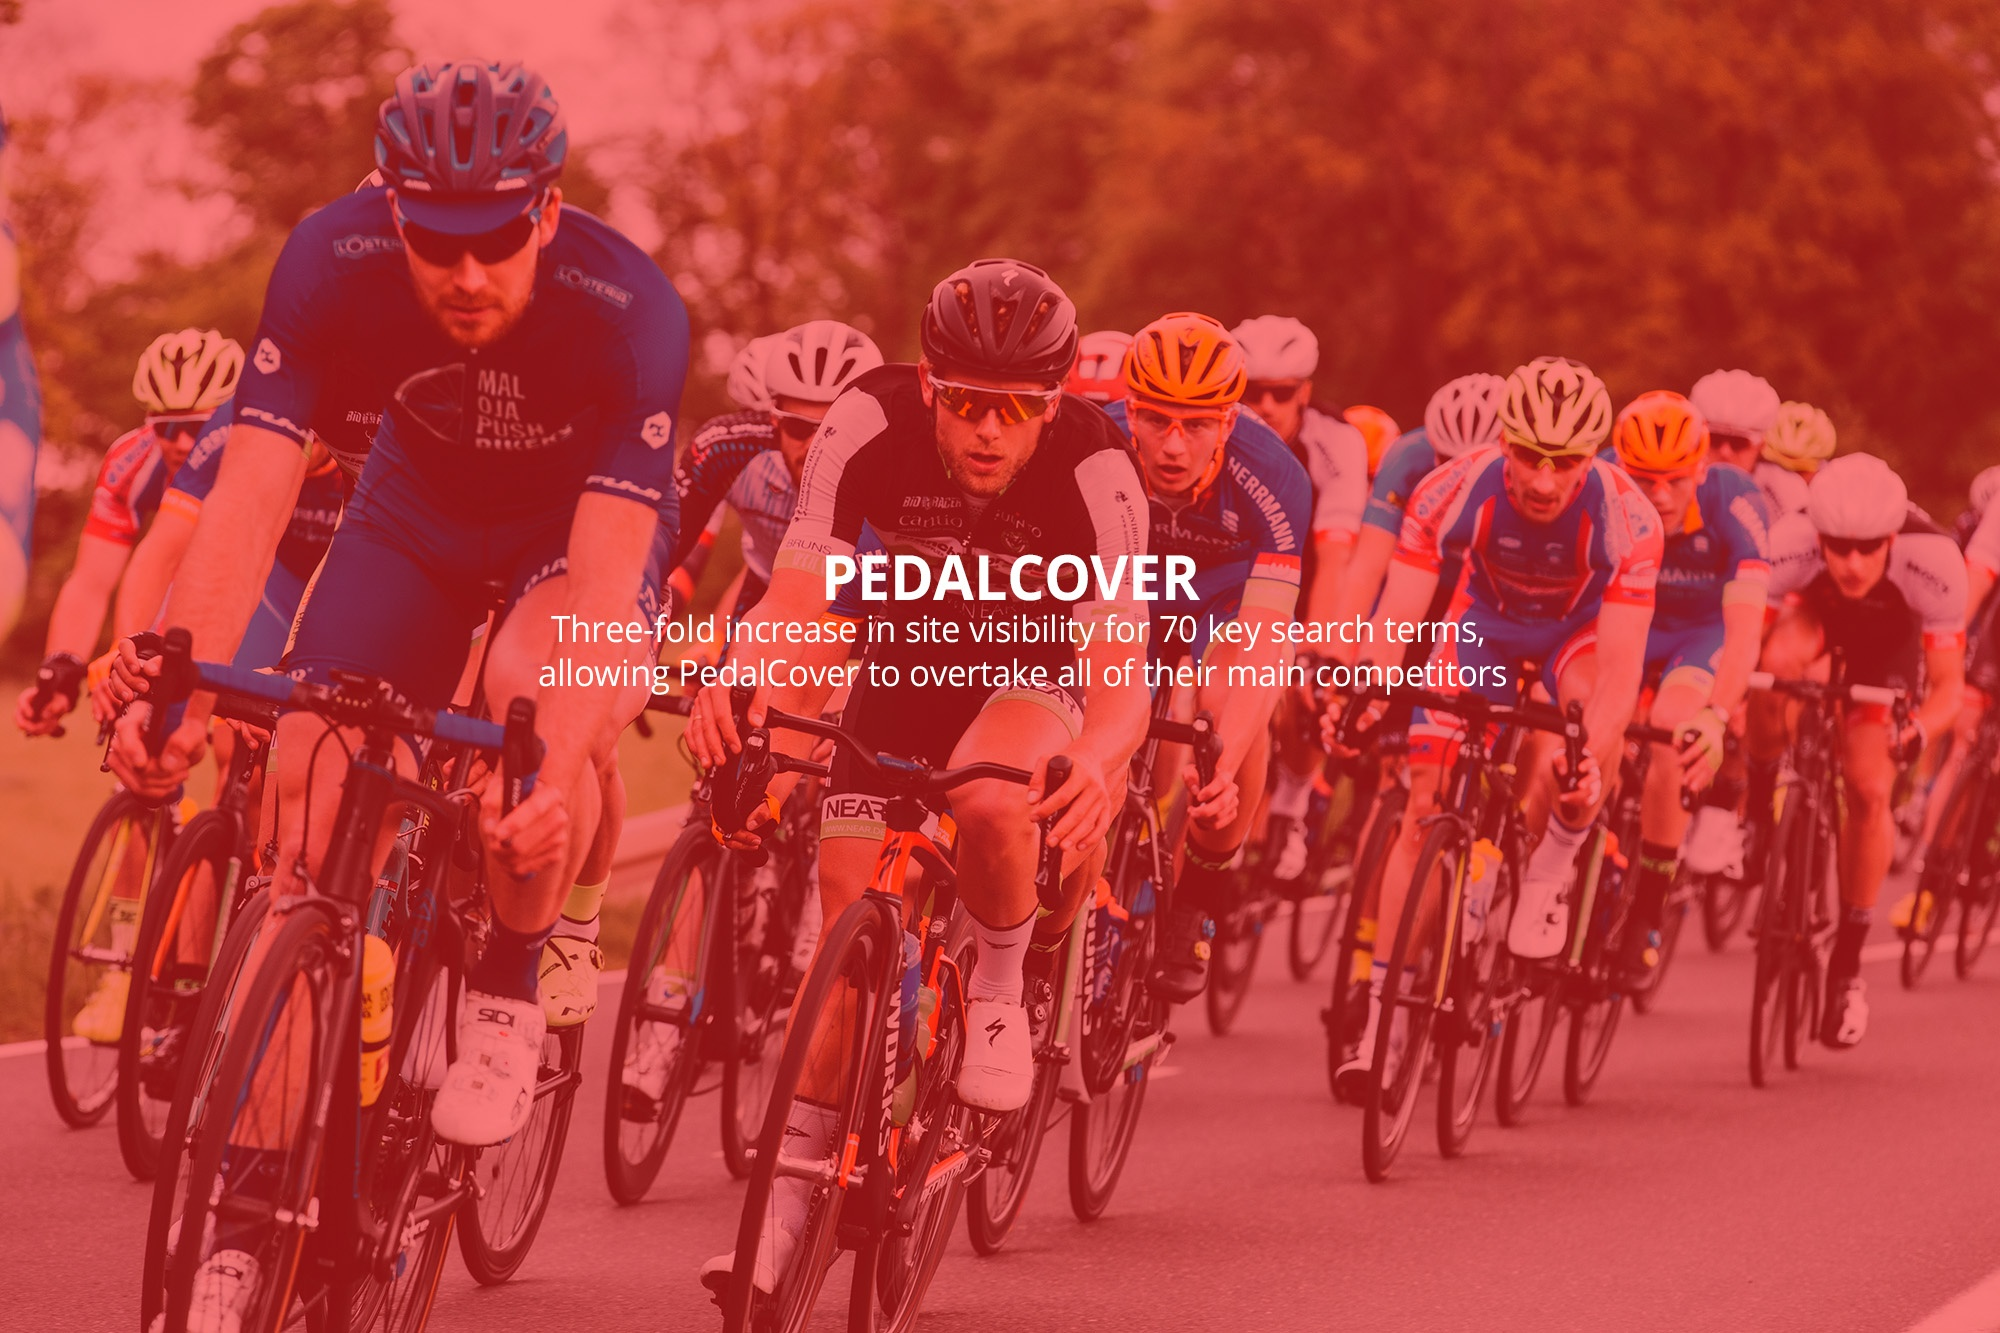 PedalCover hree-fold increase in site visibility for 70 key search terms, allowing PedalCover to overtake all of their main competitors